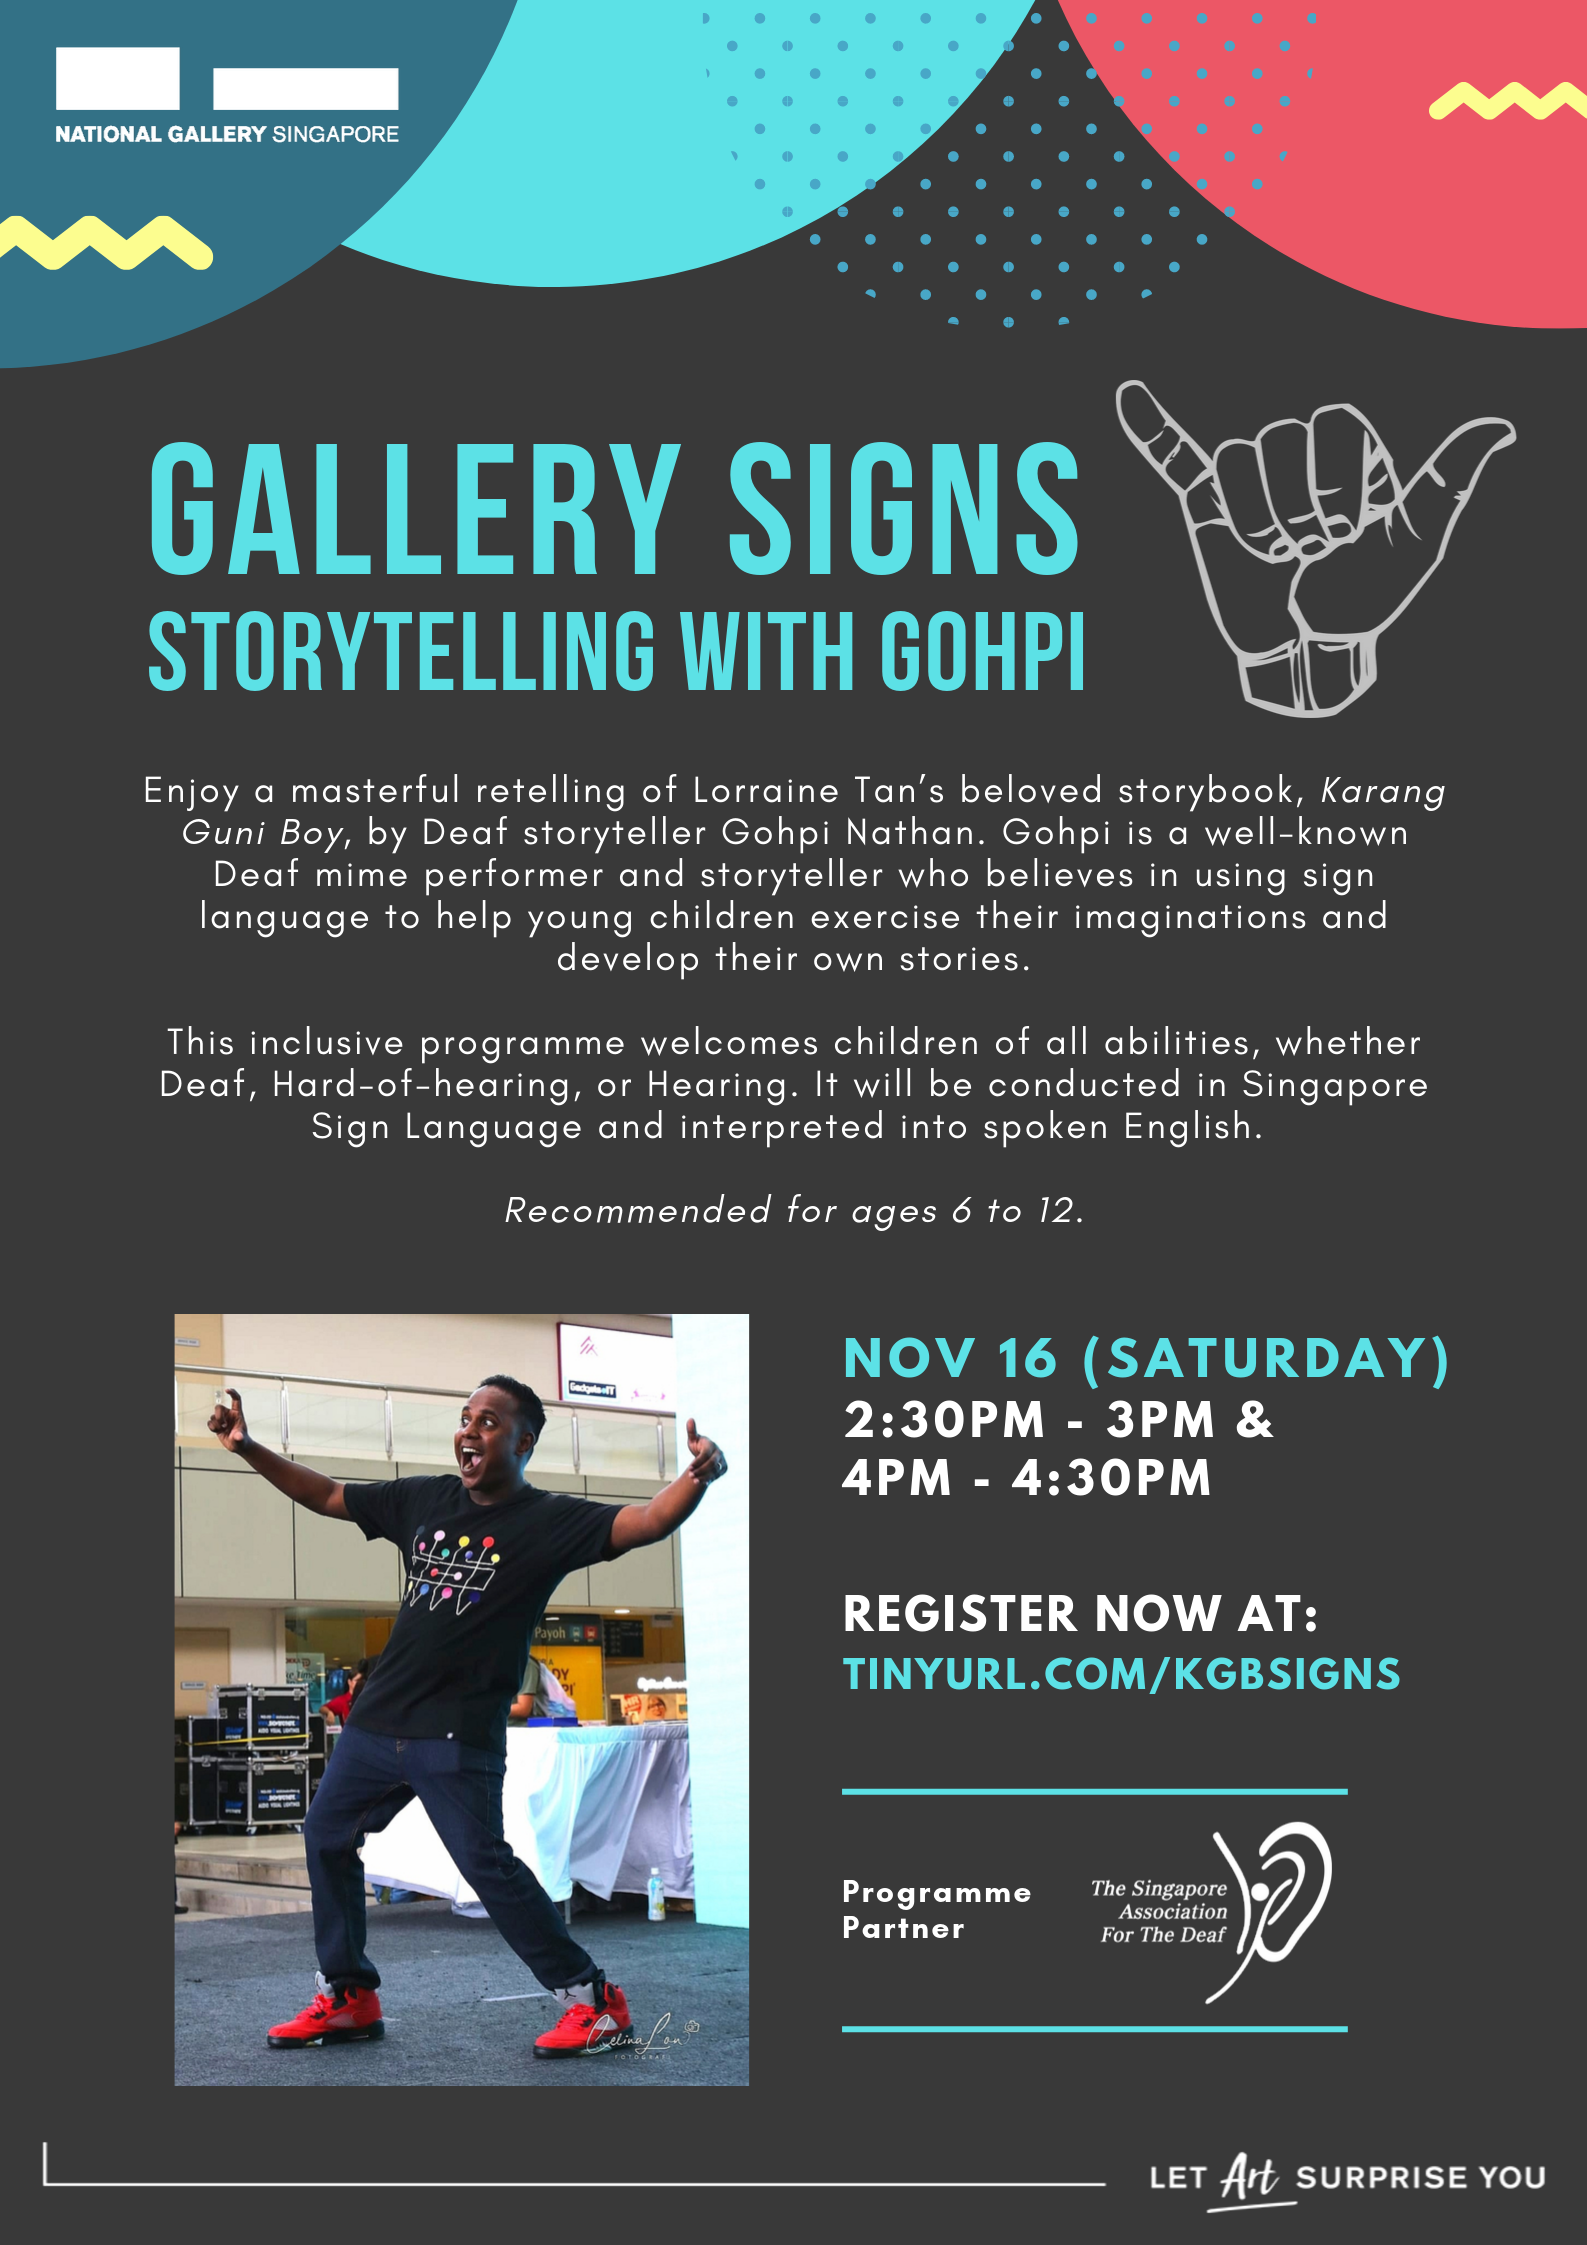 Gallery Signs: Storytelling Session With Gohpi